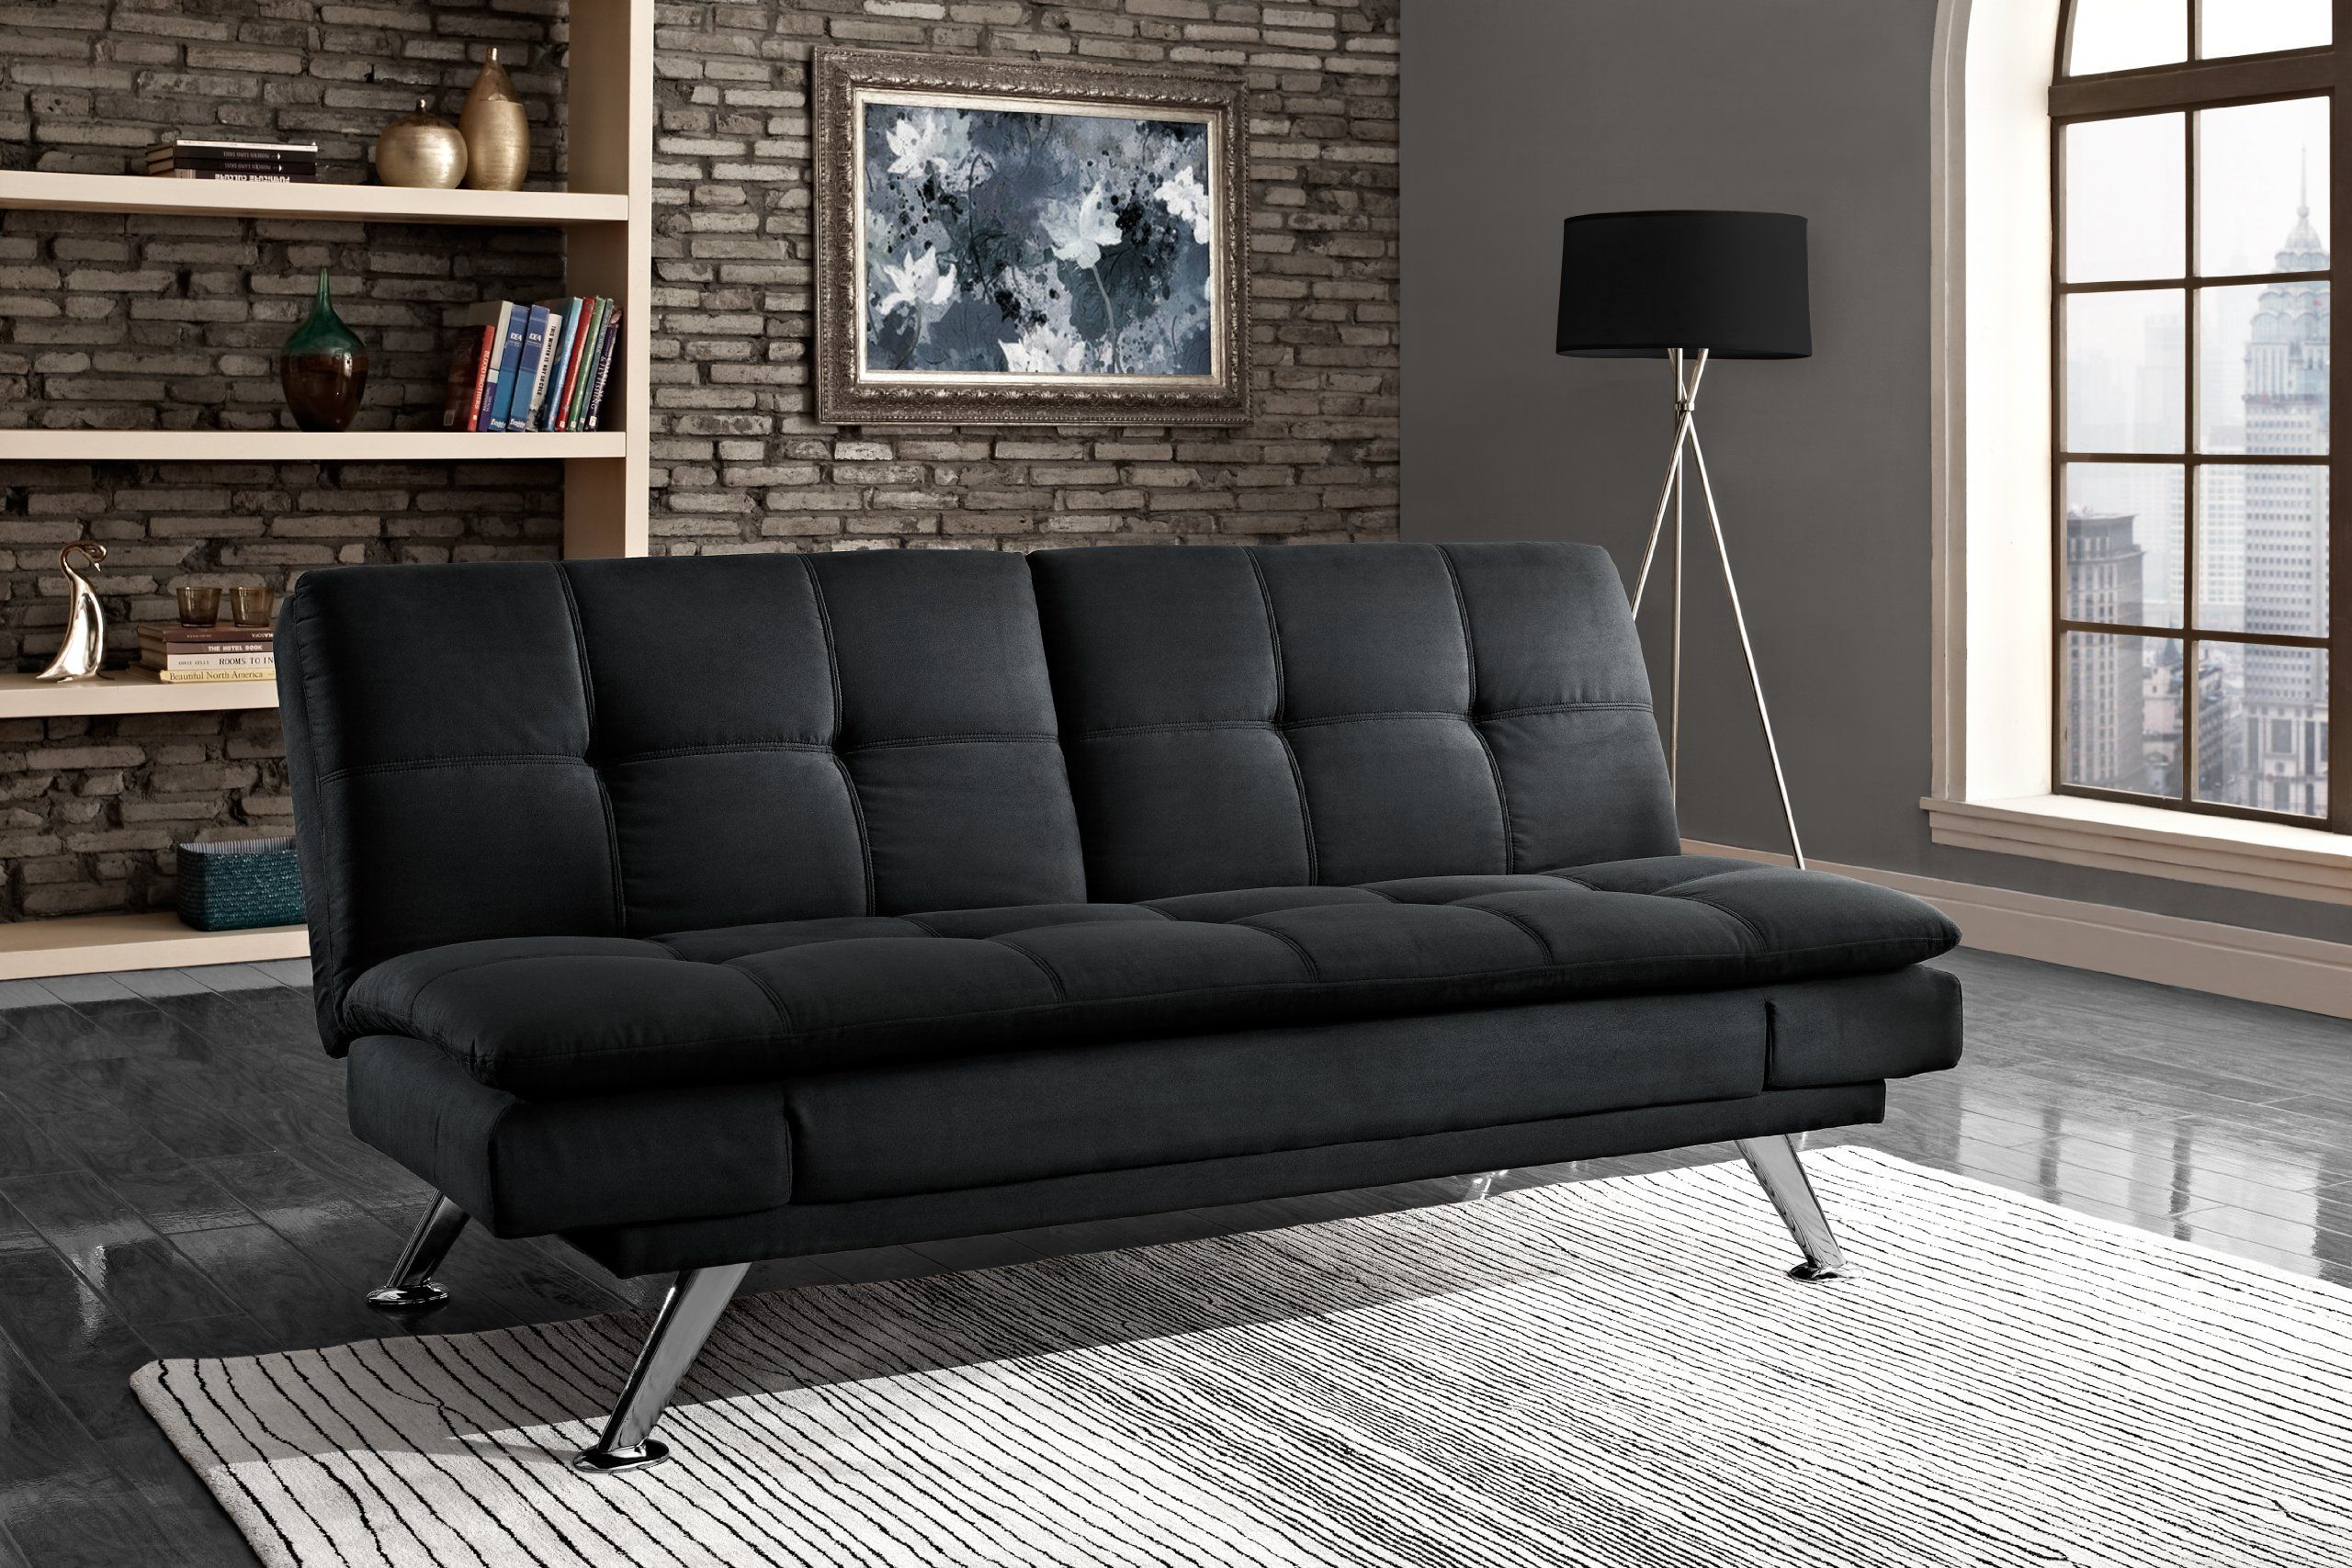 Dhp Bailey Upholstered Futon In Microfiber Upholstery Multiposition Back And Arms Full Size Black More Info Could Be Found At The Image Url